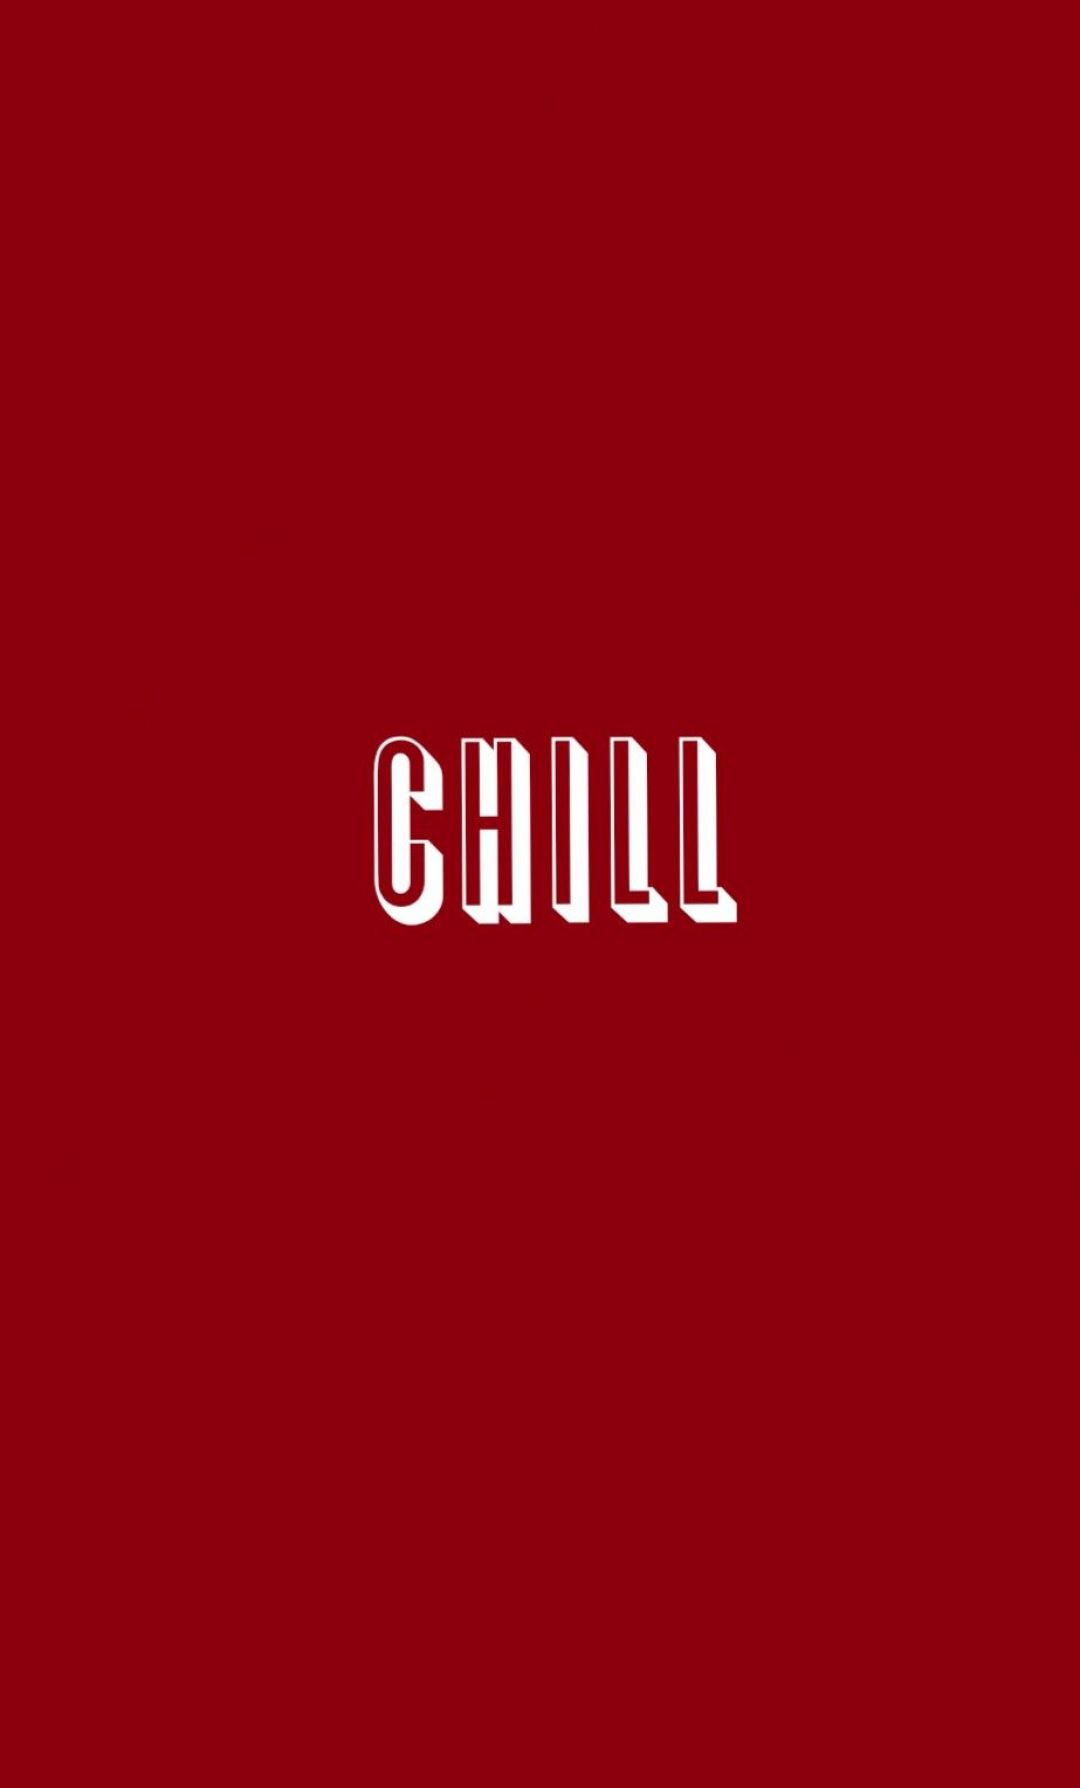 30 Chill Aesthetic Android Iphone Desktop Hd Backgrounds Wallpapers 1080p 4k 1080x1788 2021